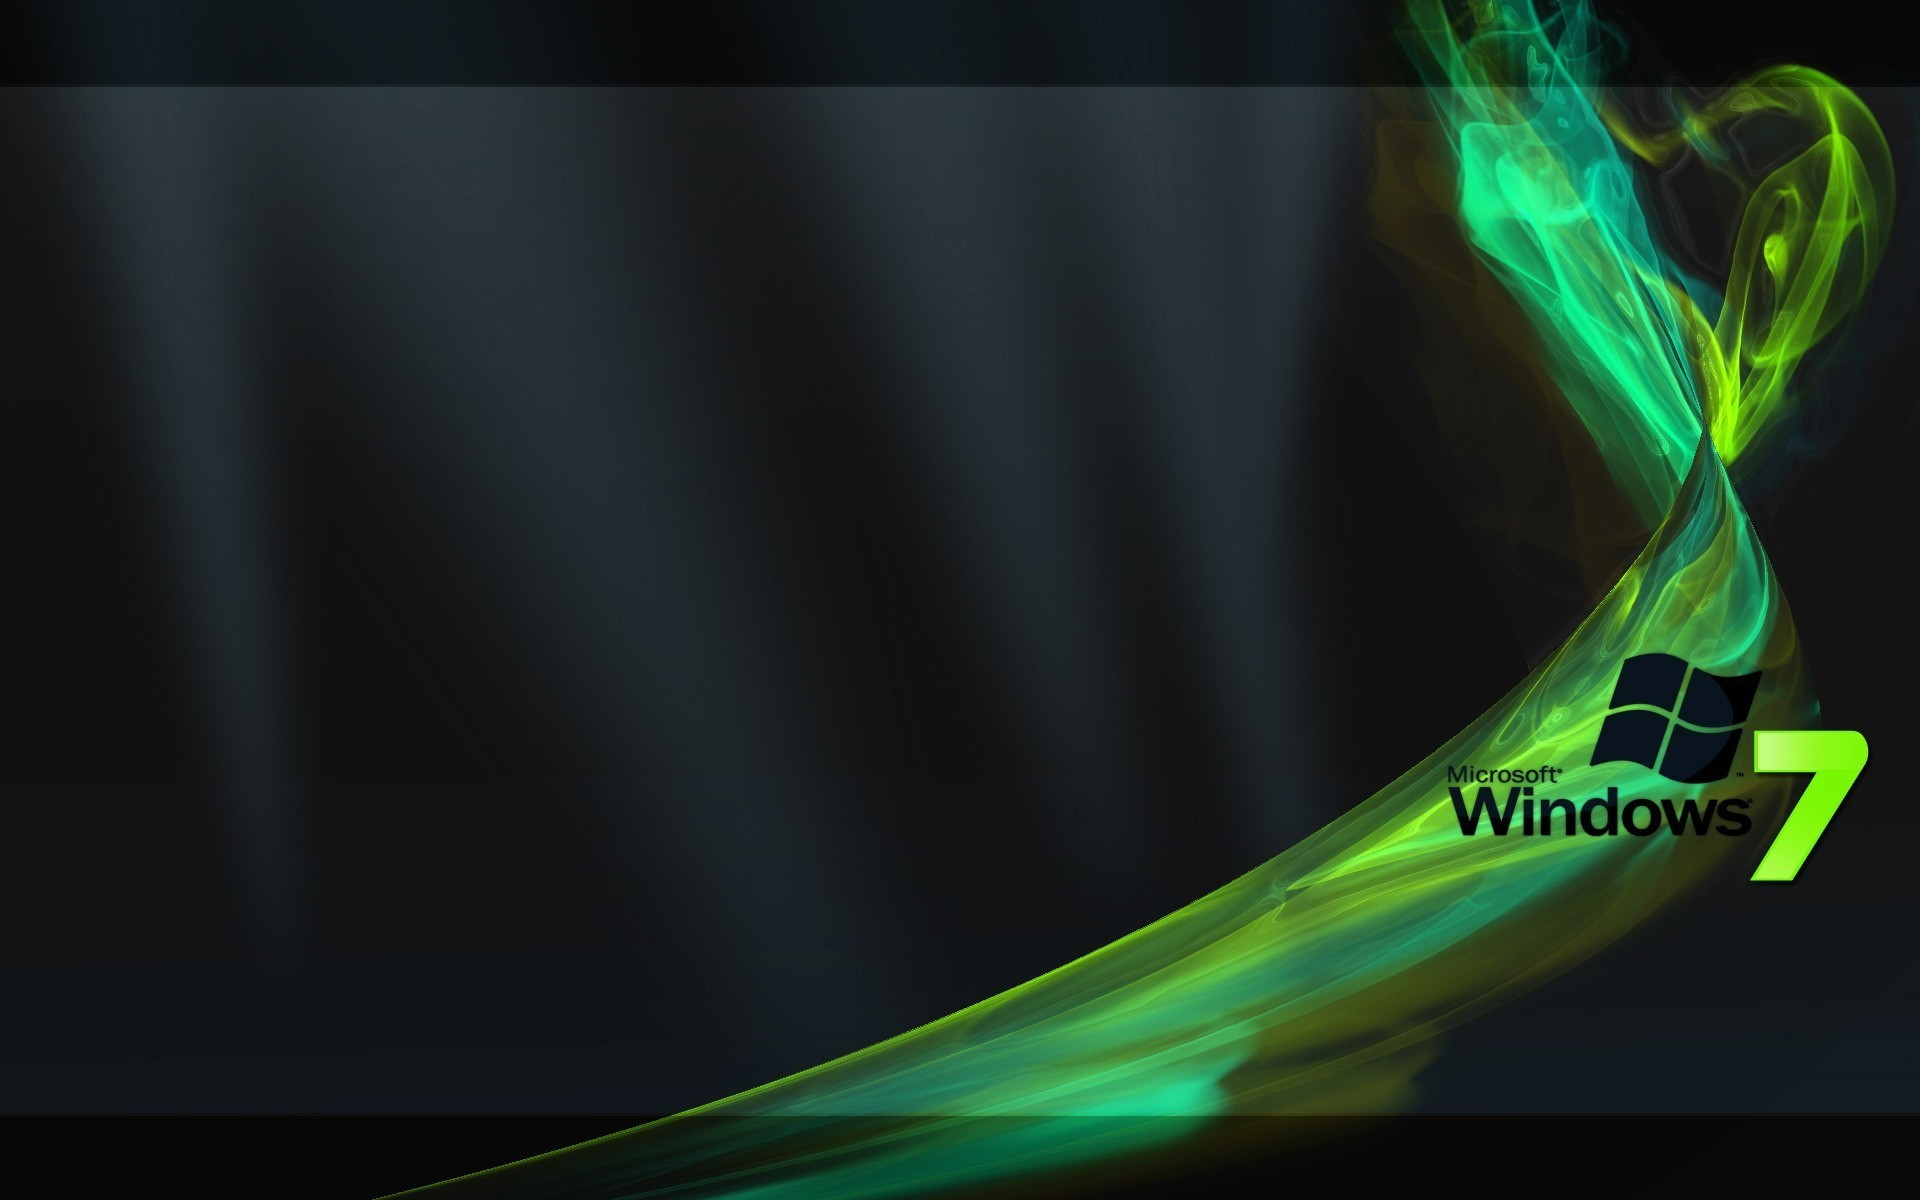 Windows 7 Background Desktop 62 images 1920x1200